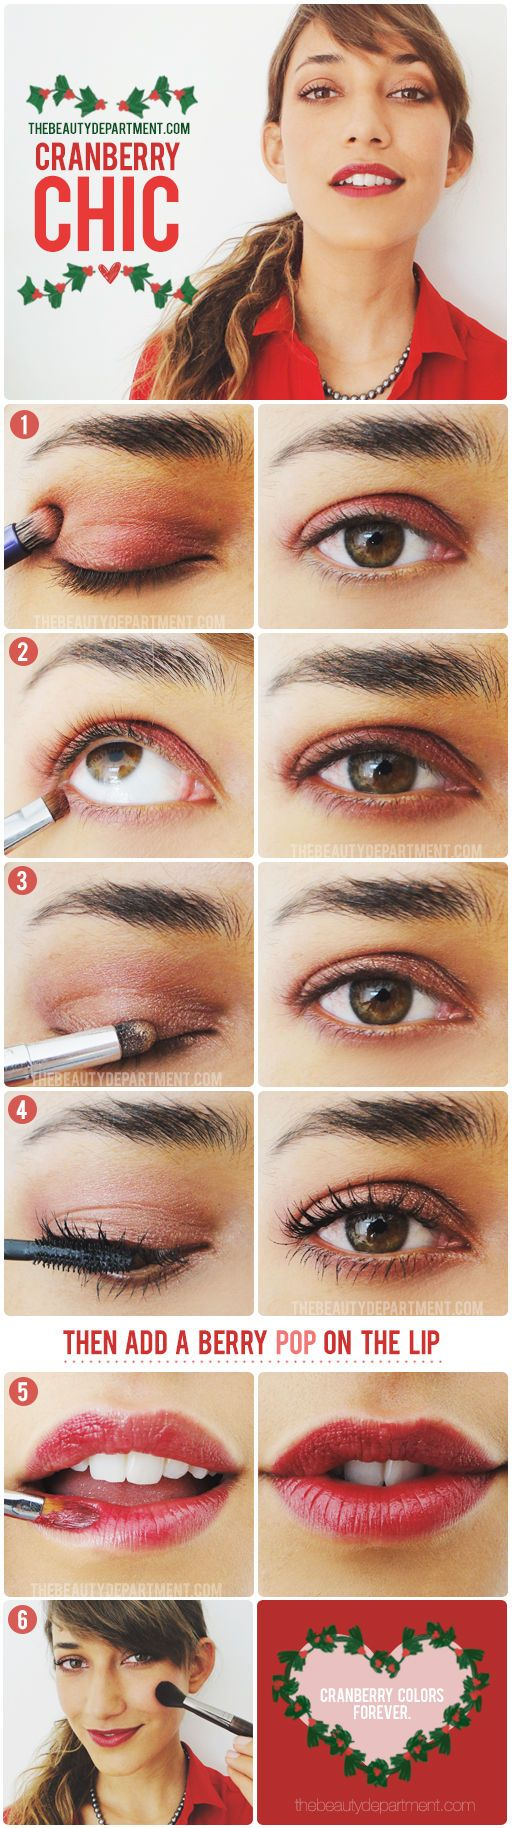 DIY holiday makeup inspiration for your family dinner!